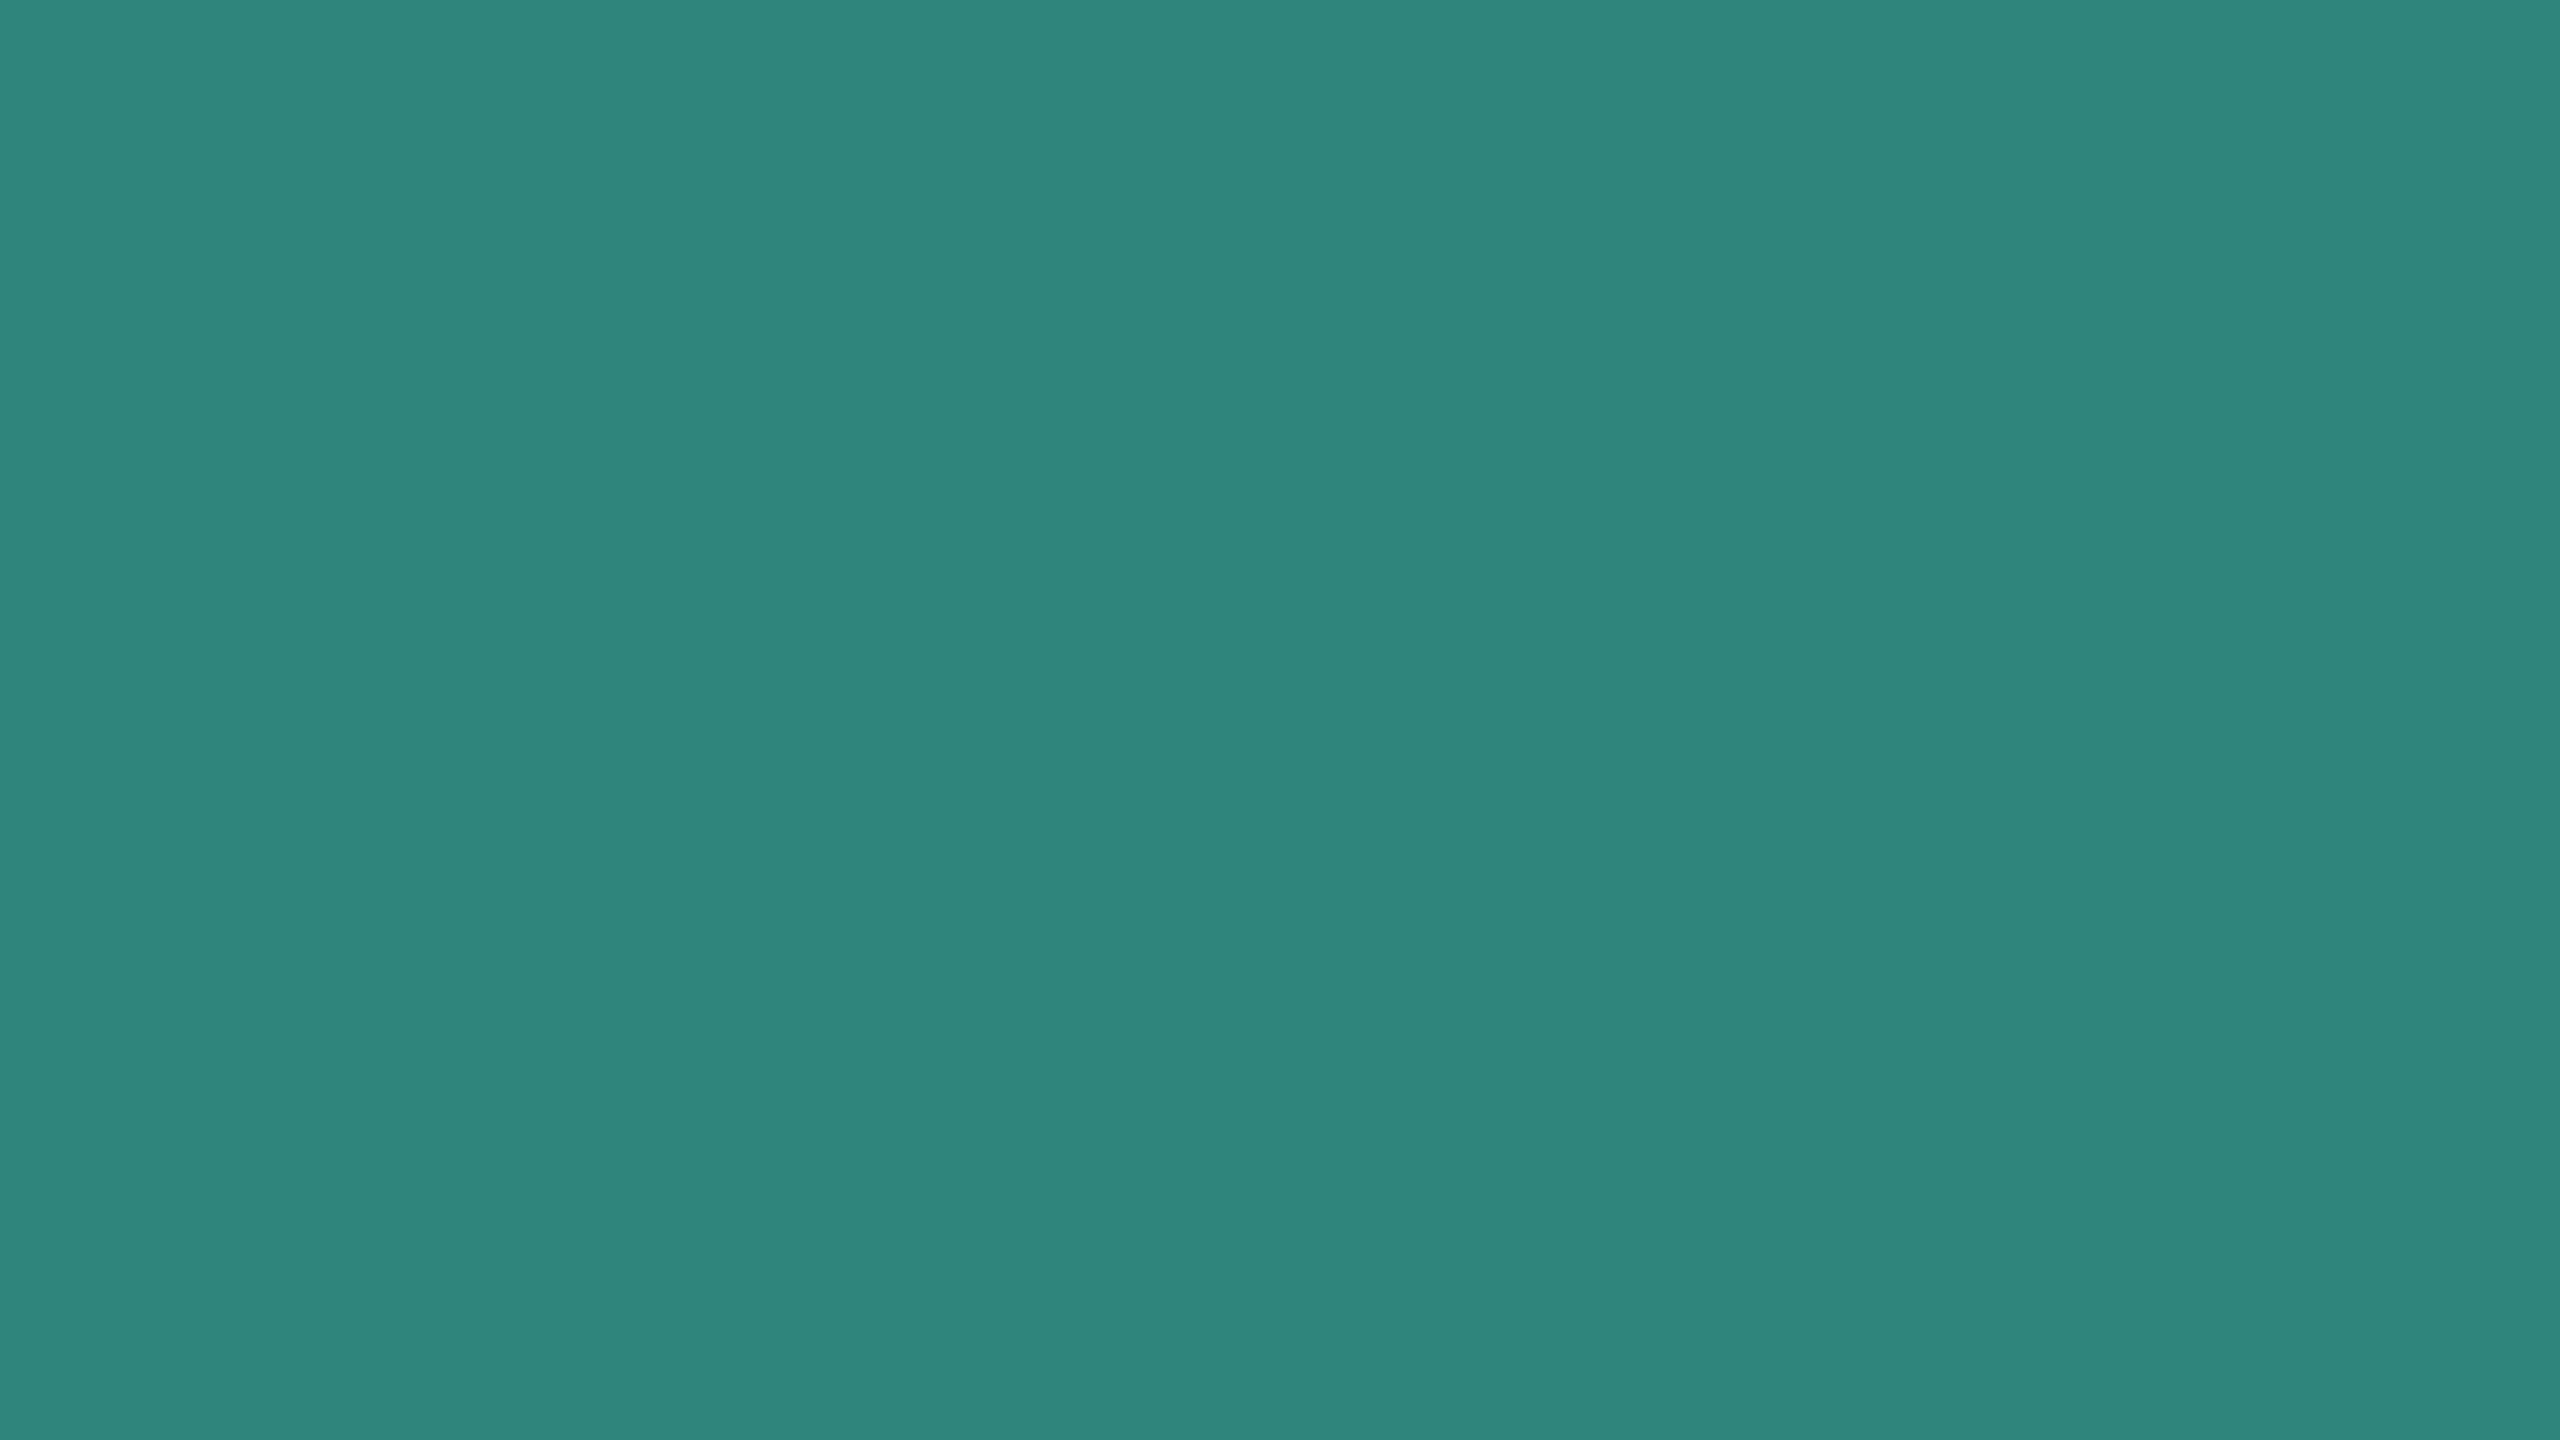 2560x1440 Celadon Green Solid Color Background